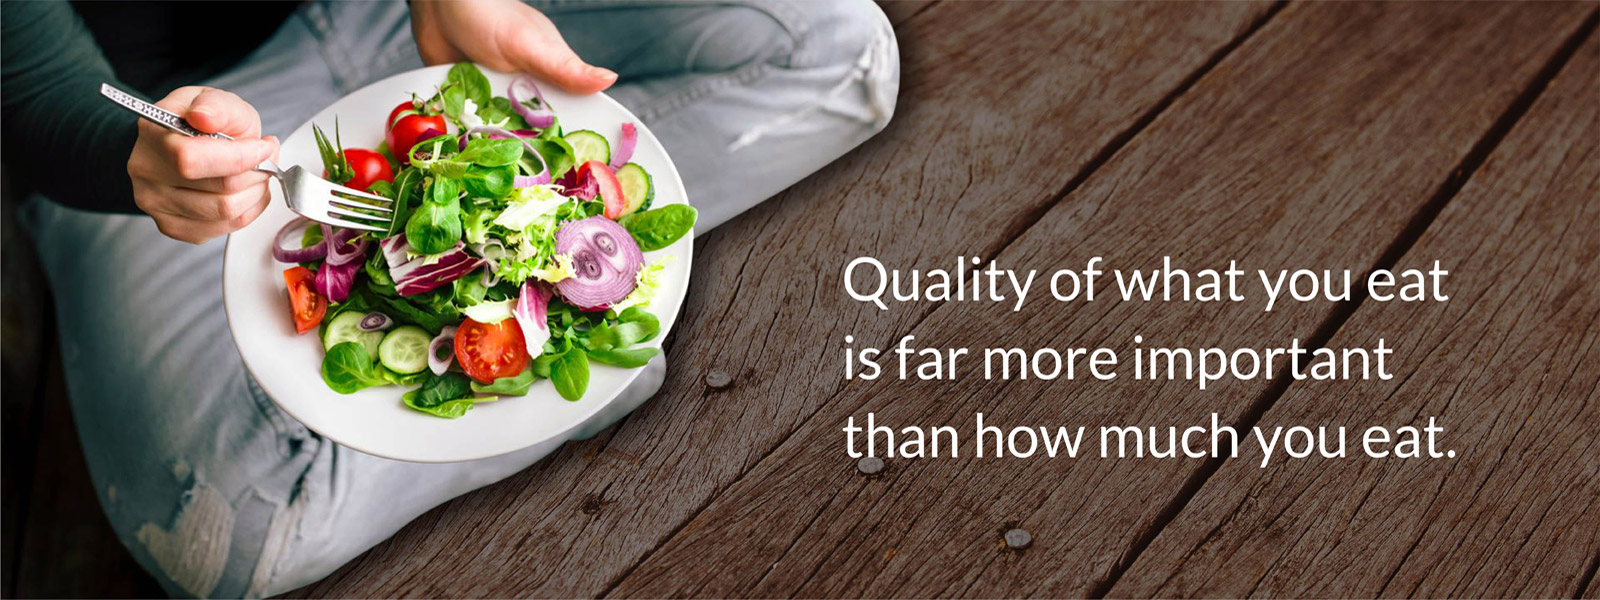 Quality of What you eat is more important